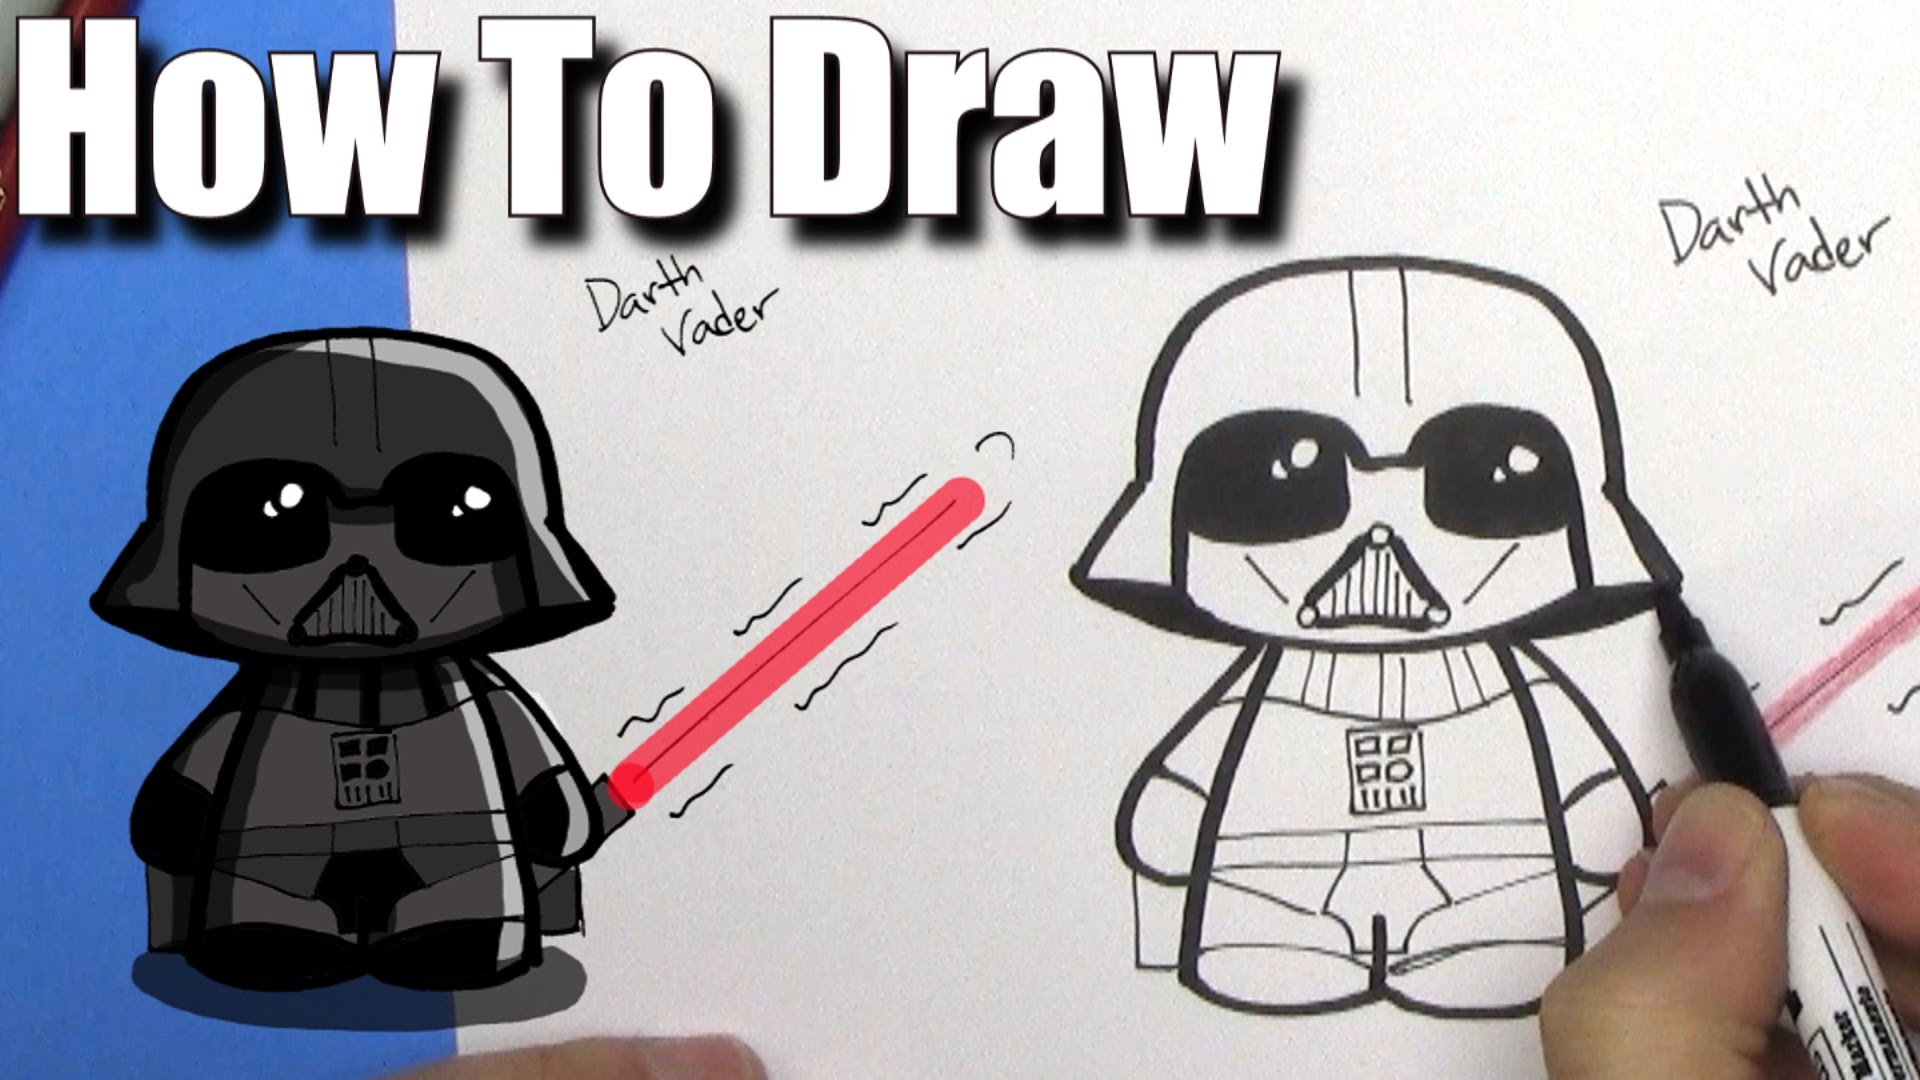 Darth vader clipart cartoon. How to draw cute